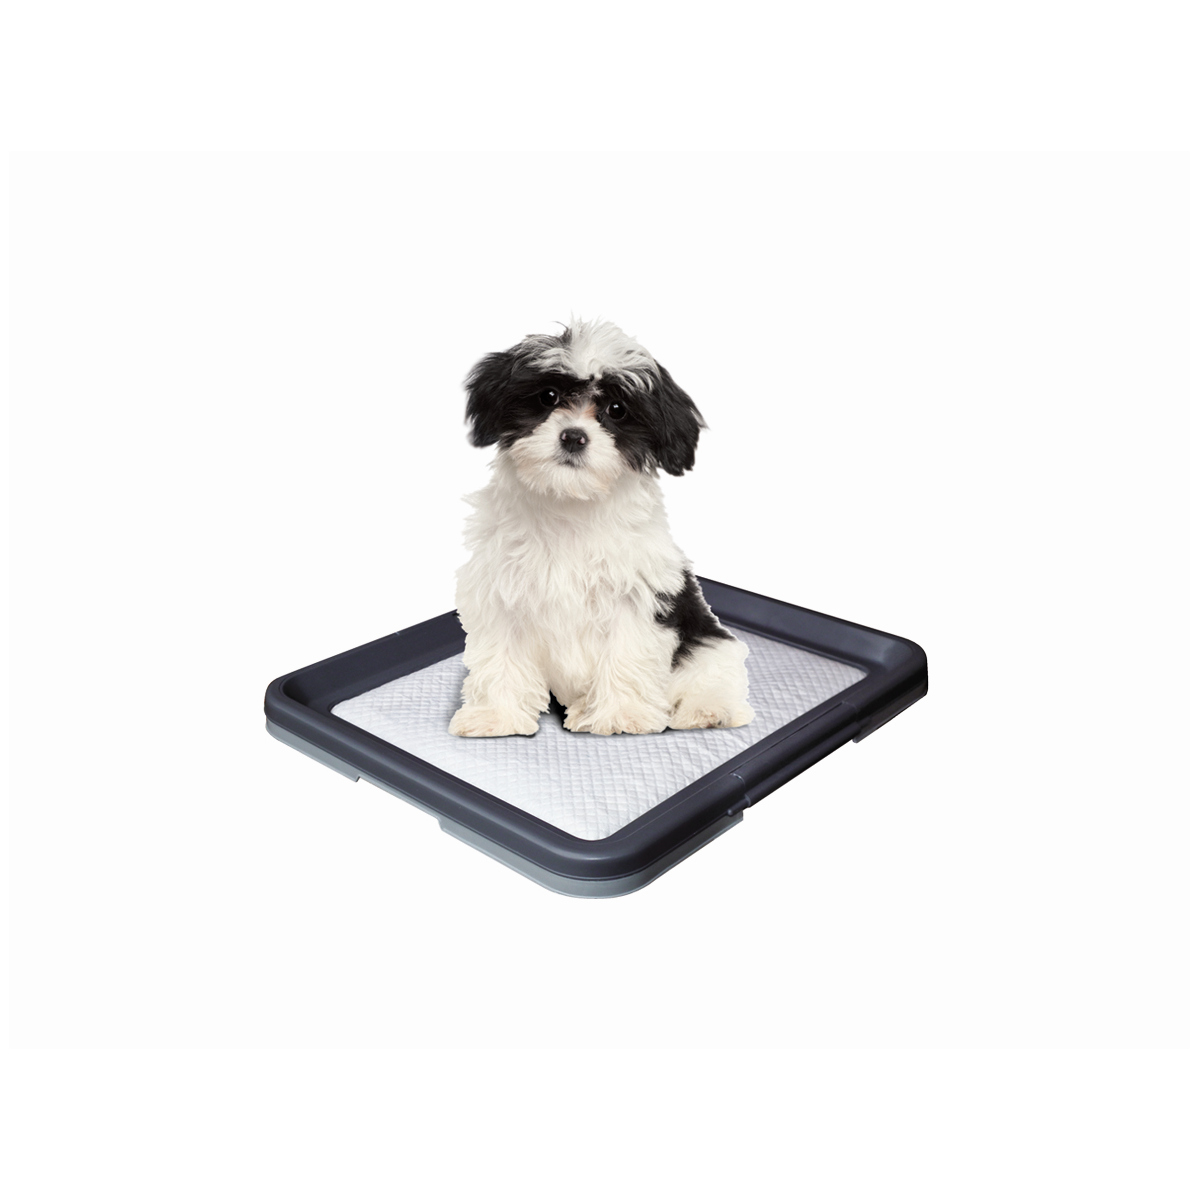 NB PUPPY TRAININGSET SMALL 00001